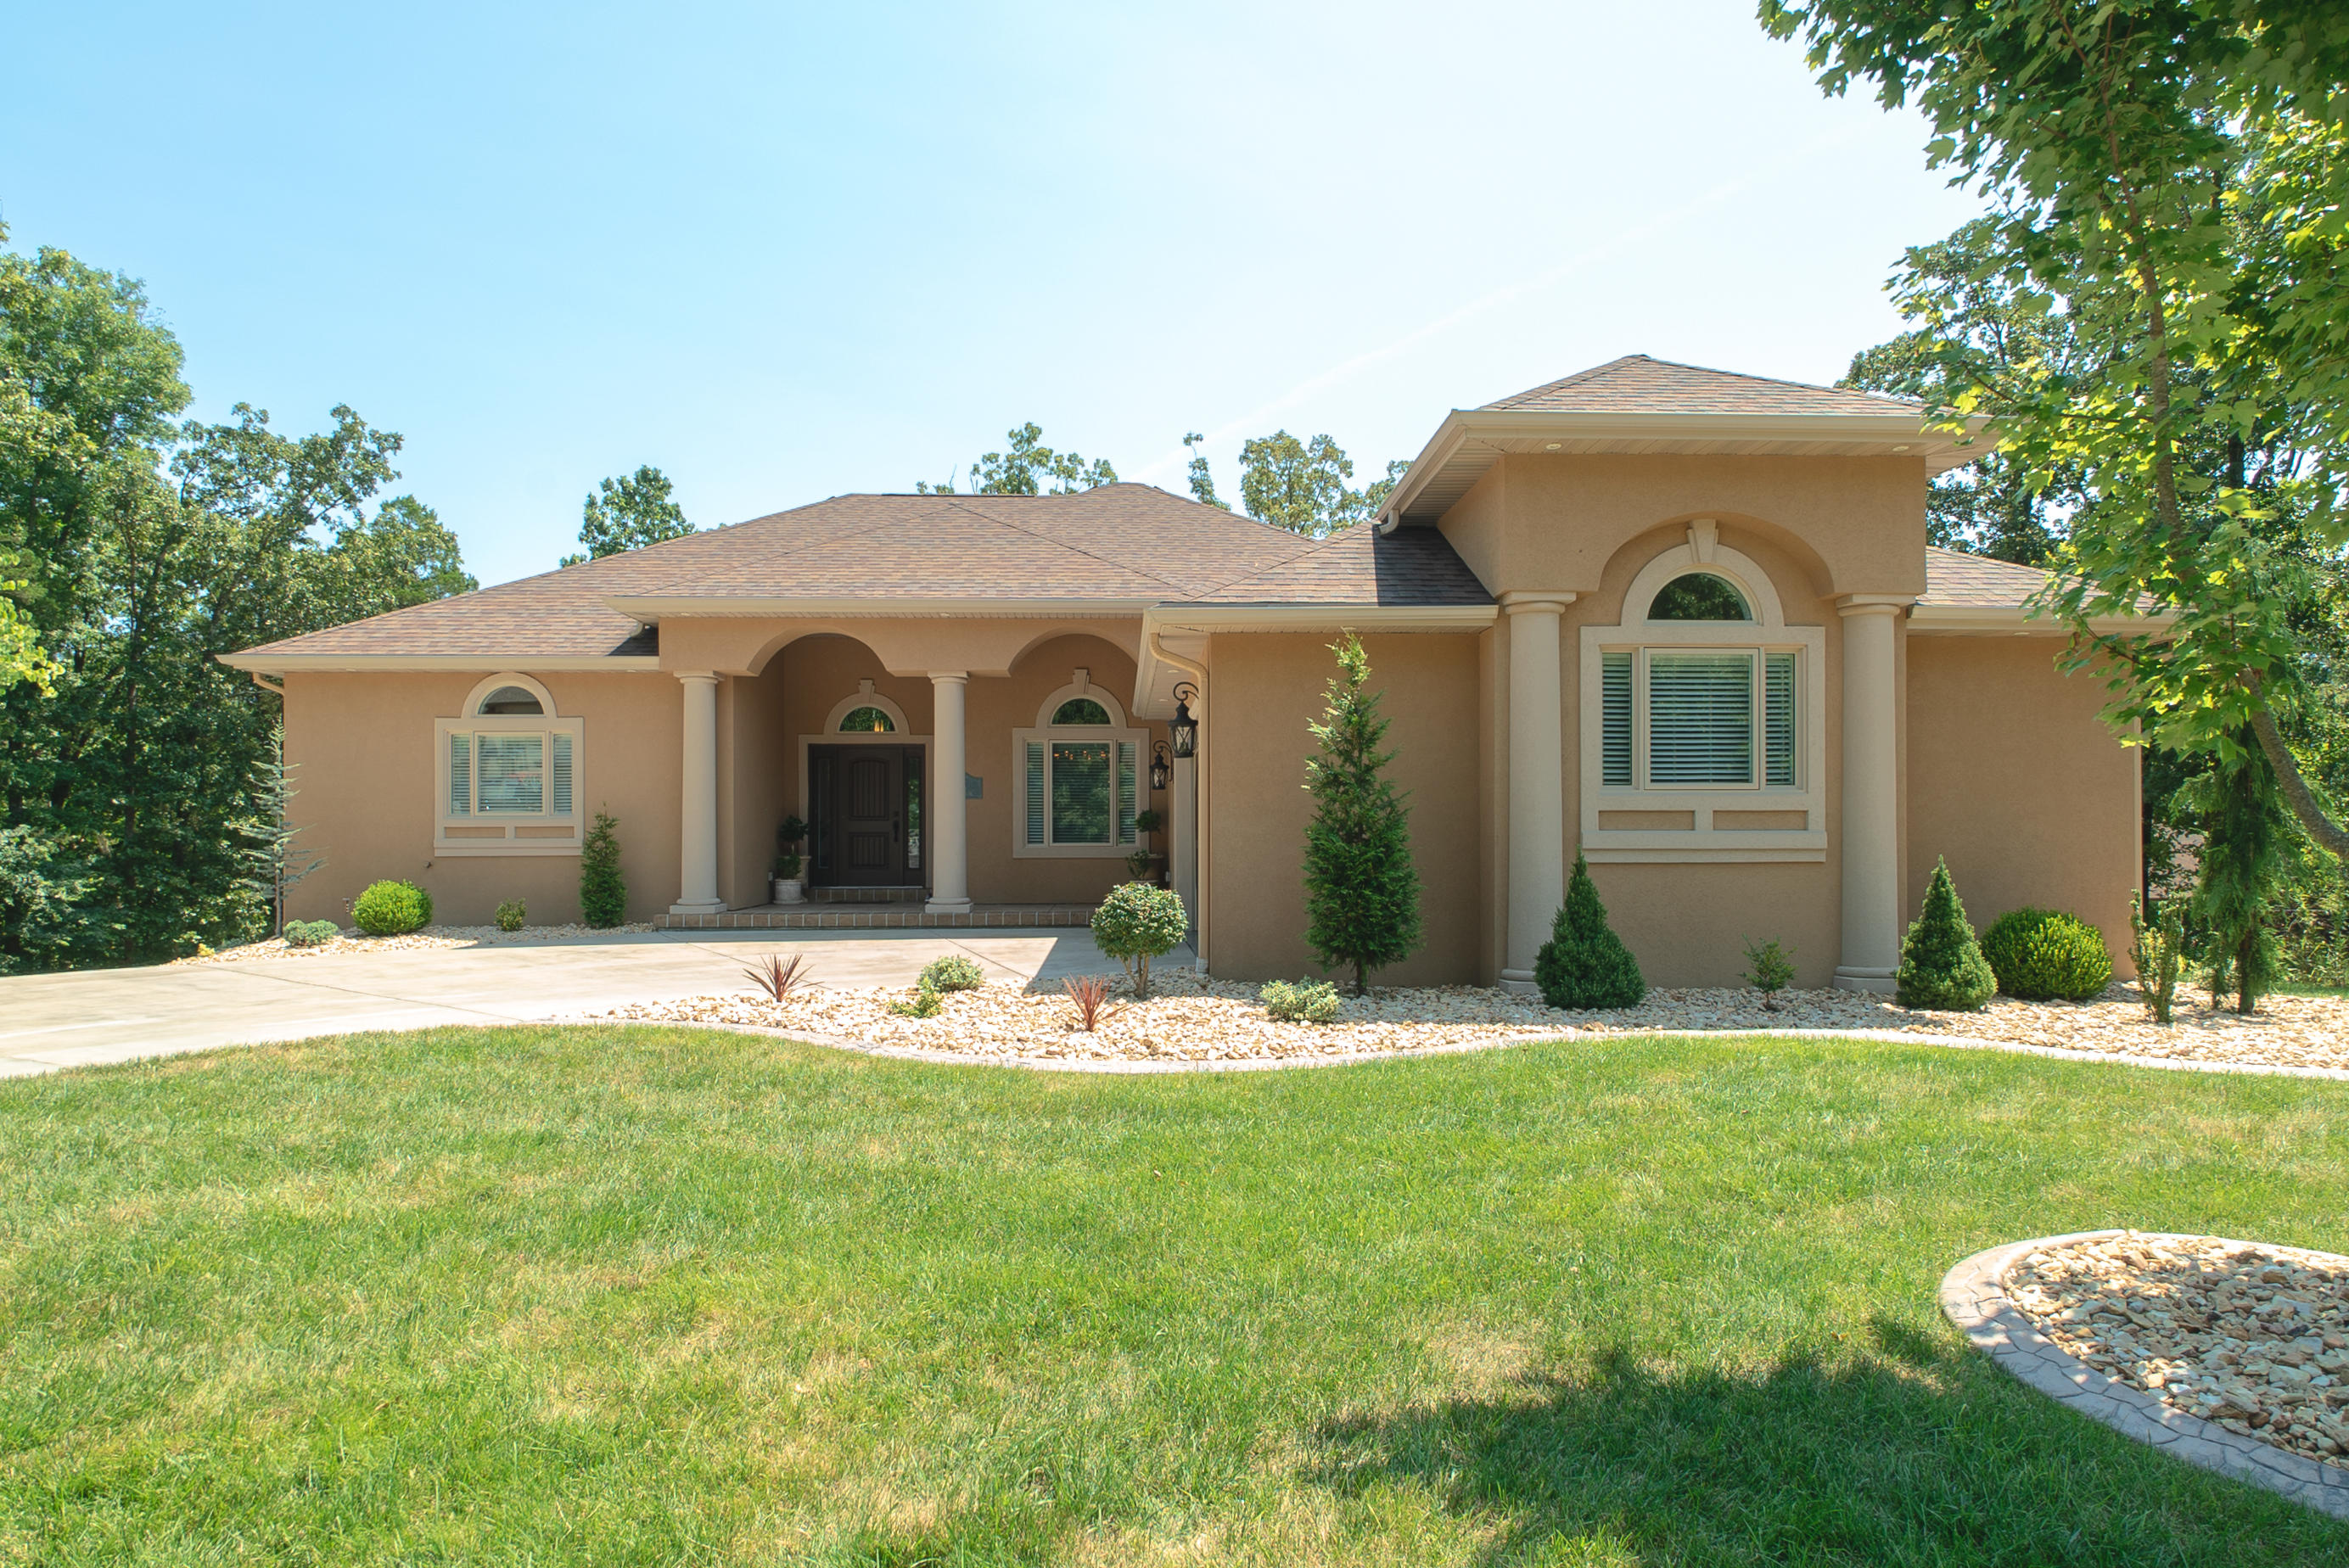 115 Beth Page Court Branson, MO 65616